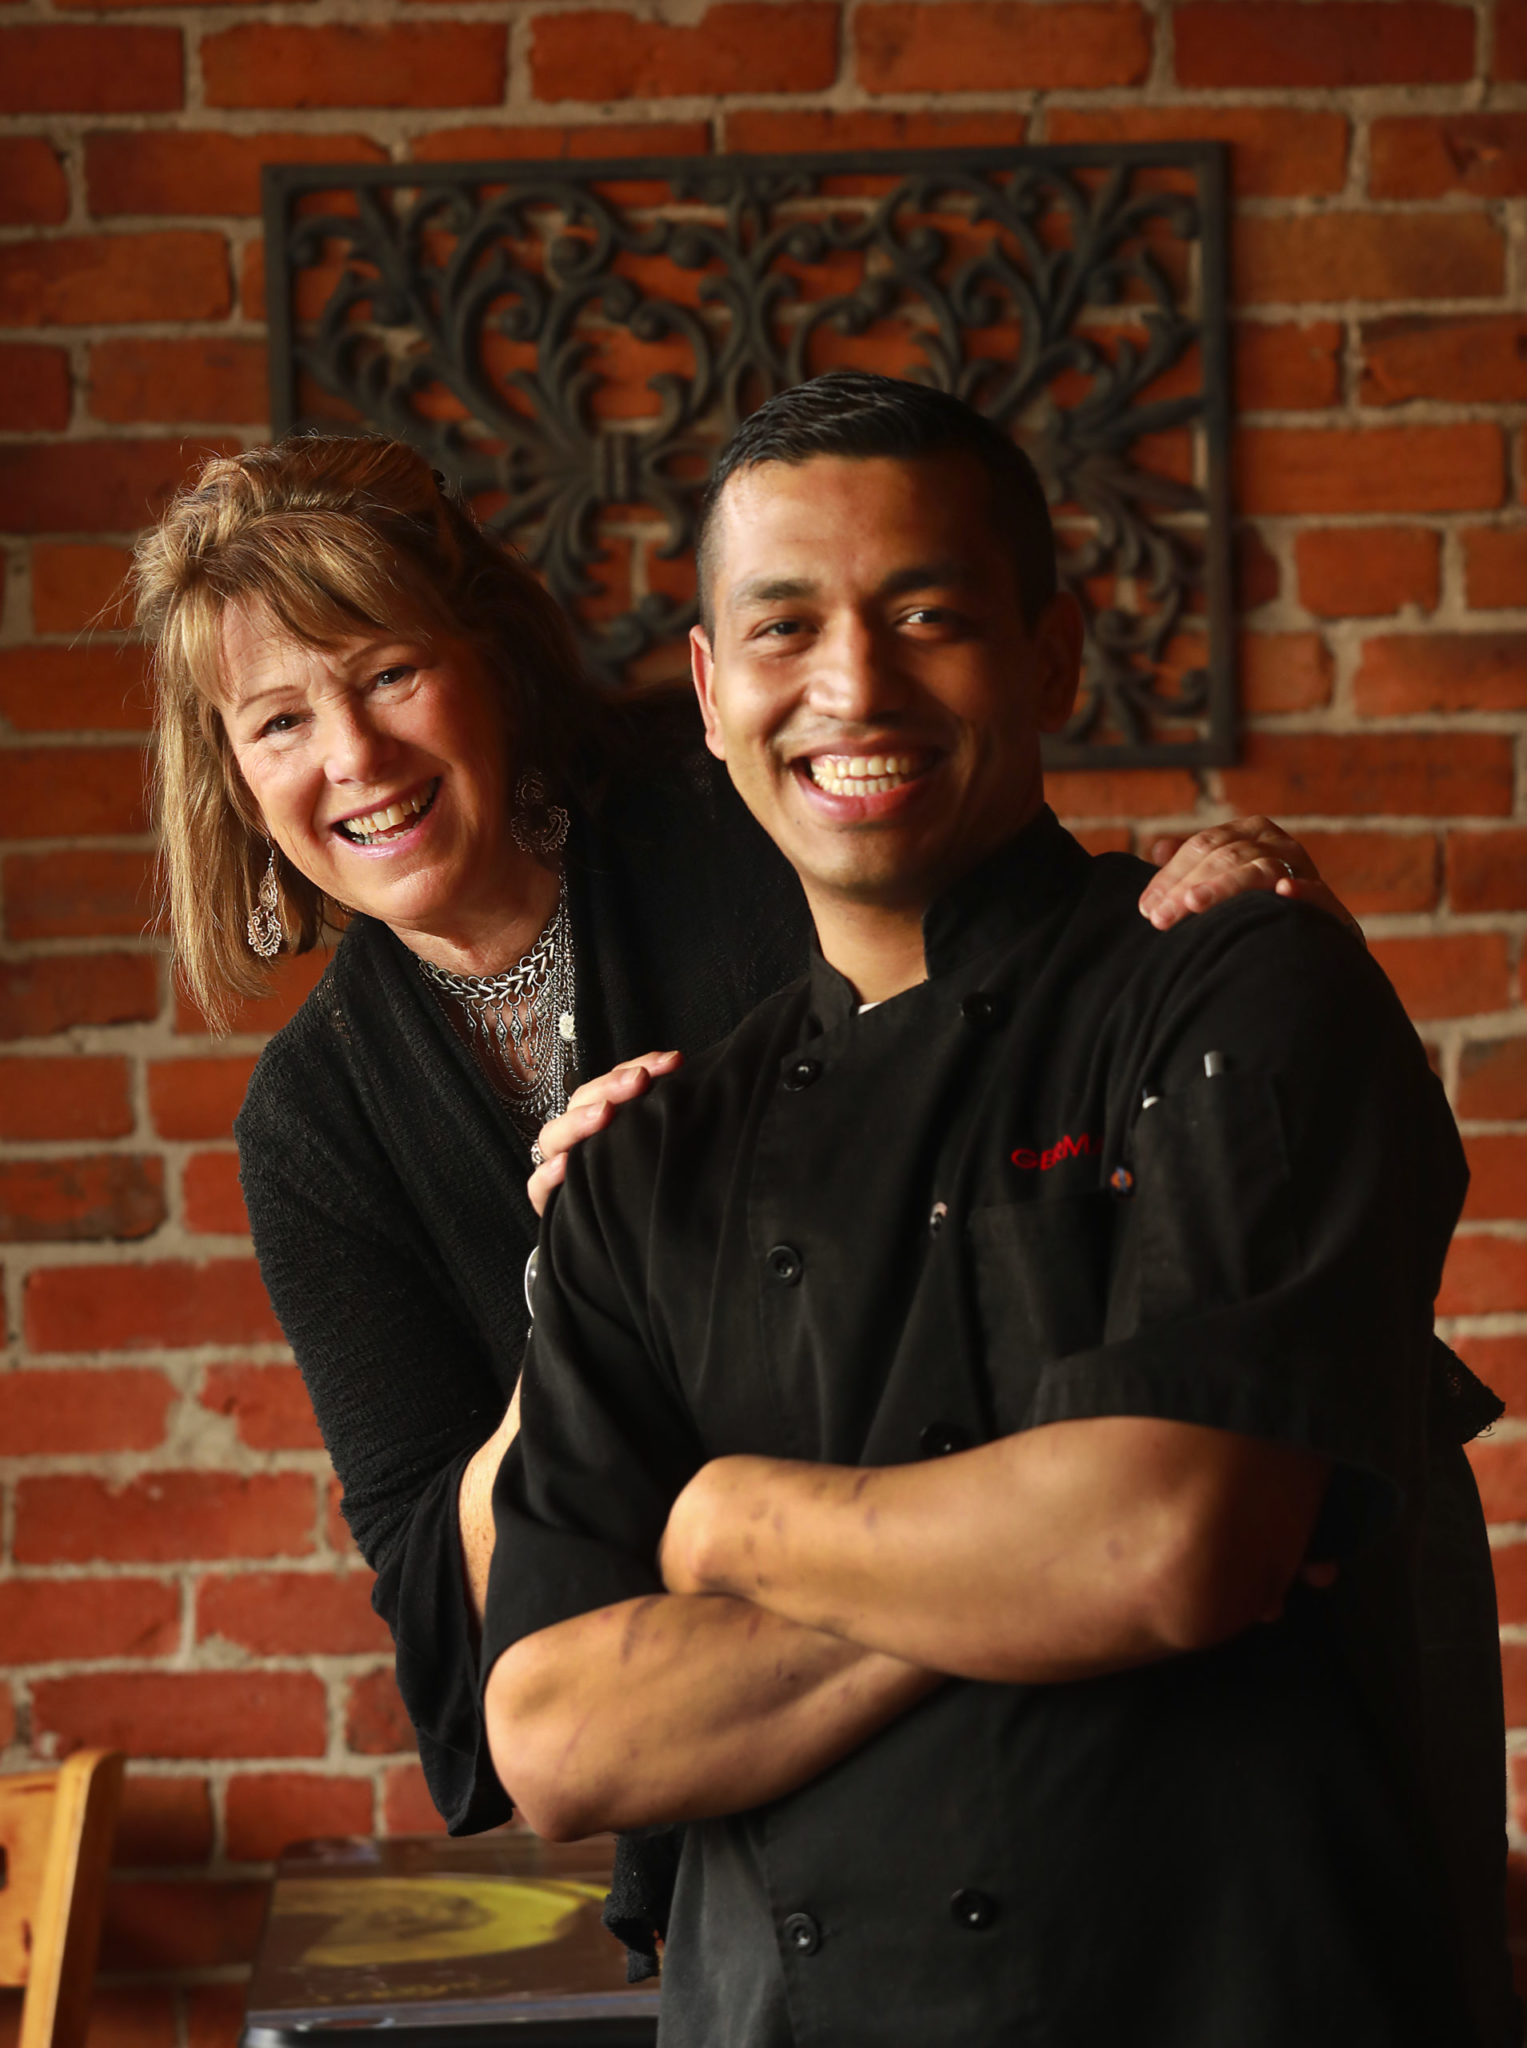 Owner and restaurant designer Shawn E. Hall and her chef German Bacho at the Gypsy Cafe in Sebastopol.